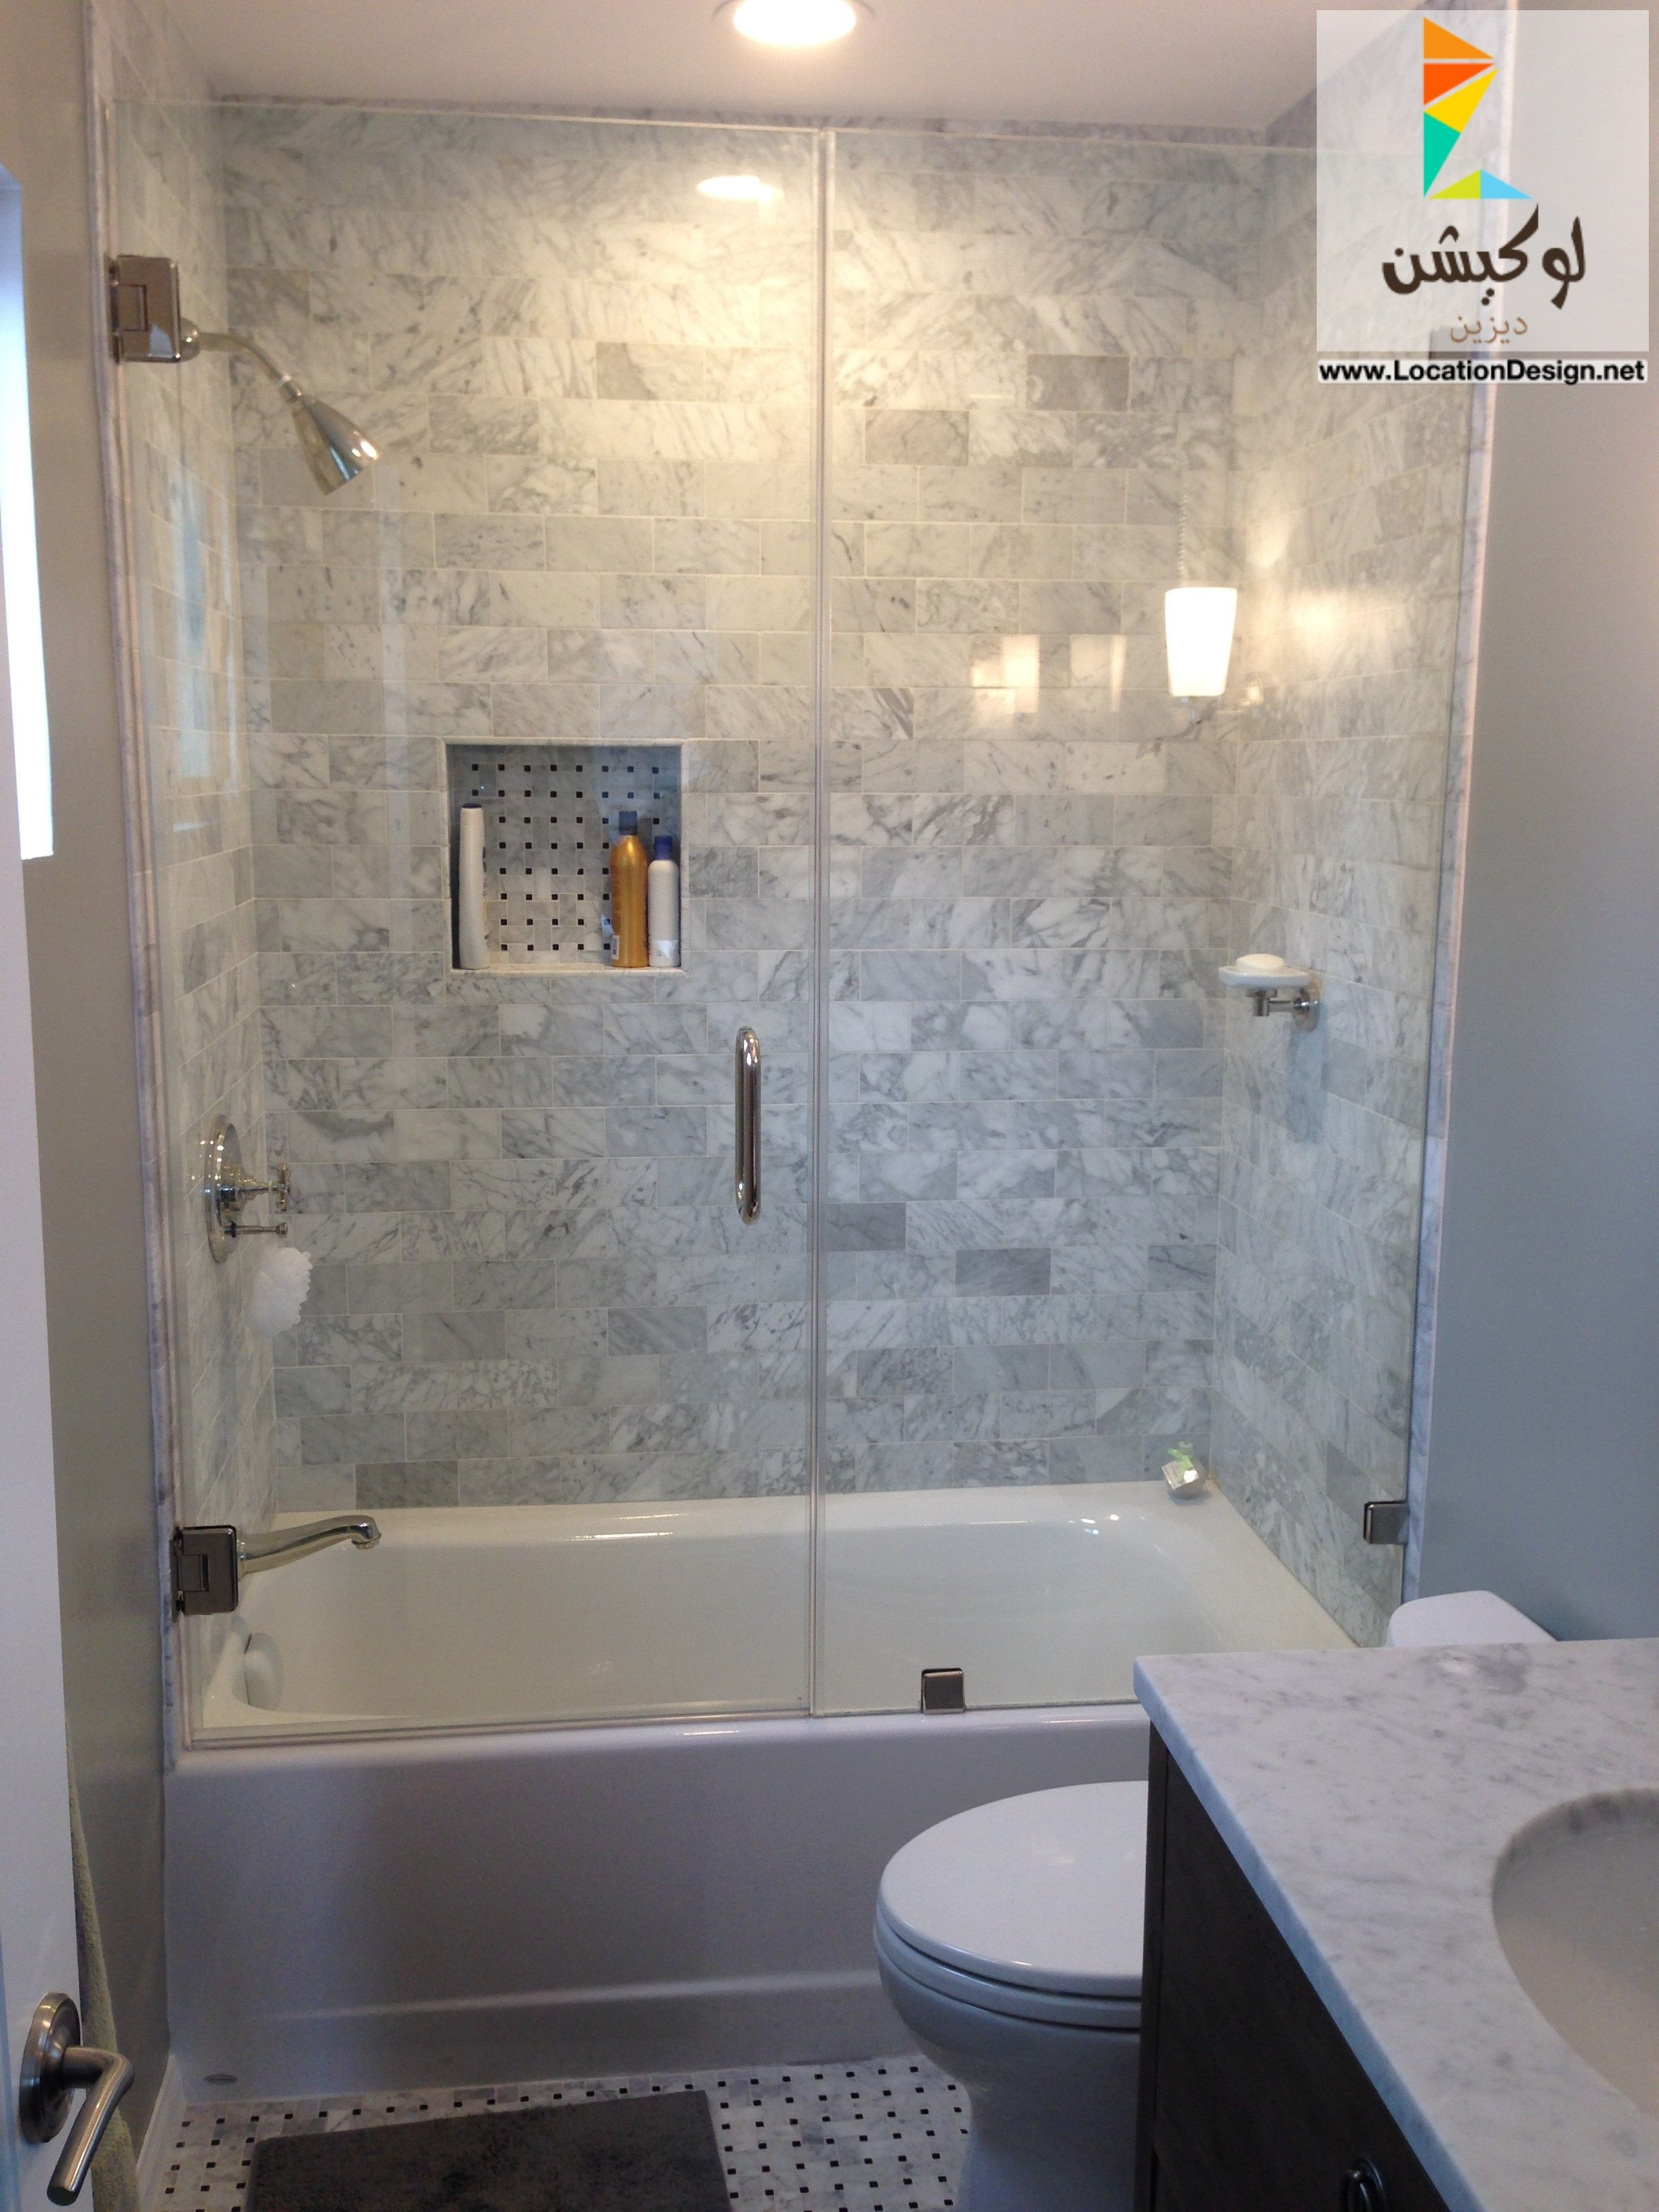 ديكورات حمامات صغيرة جدا وبسيطة Bathroom Remodel Shower Bathroom Remodel Designs Bathroom Design Small